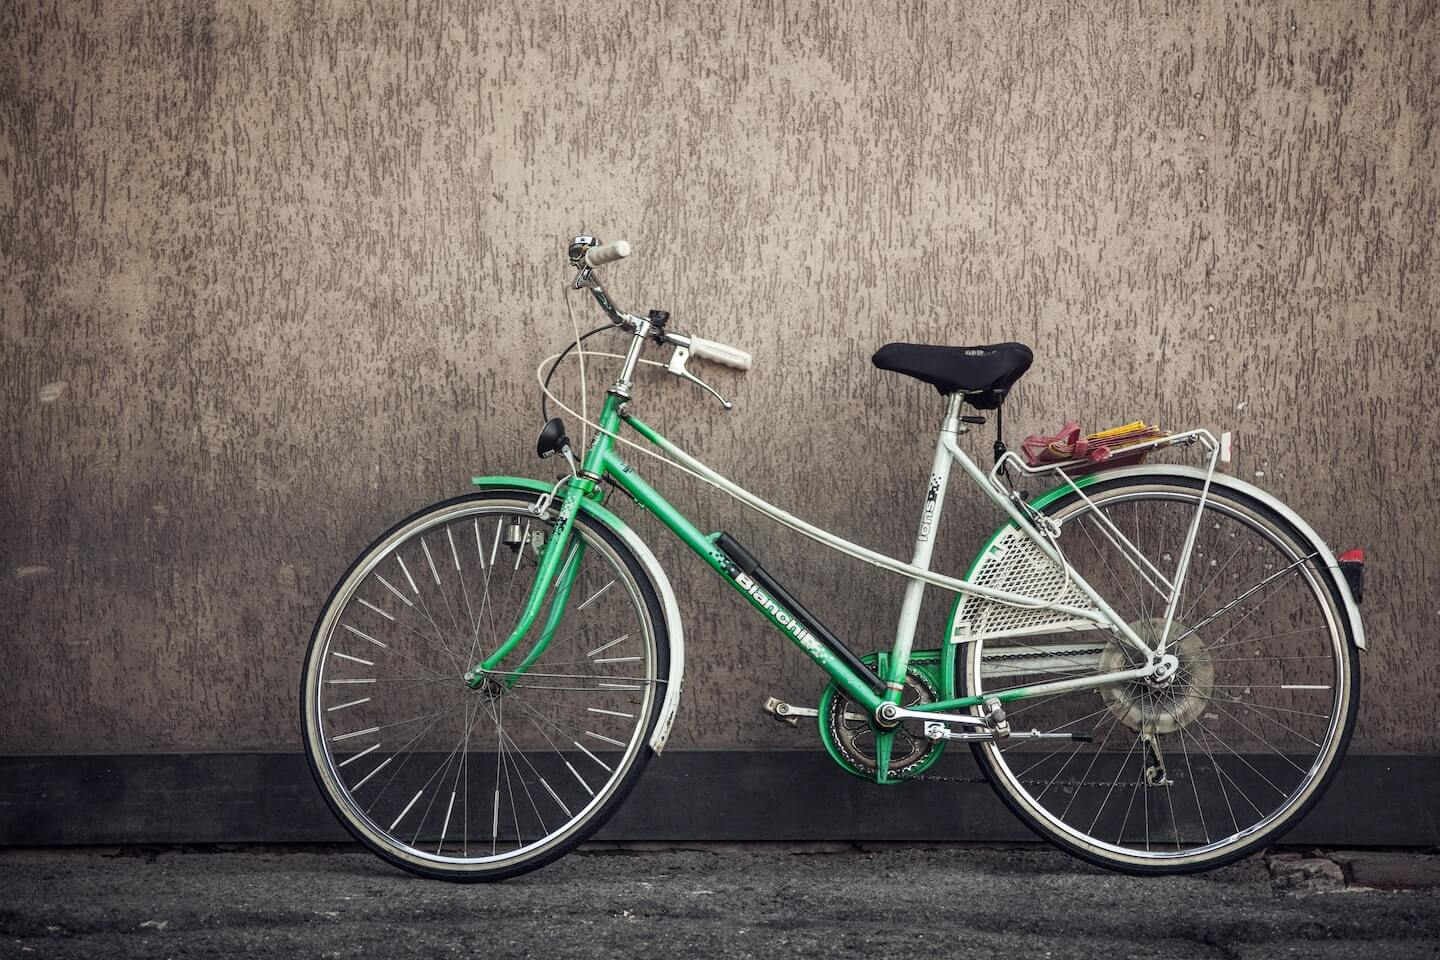 A classic green bicycle